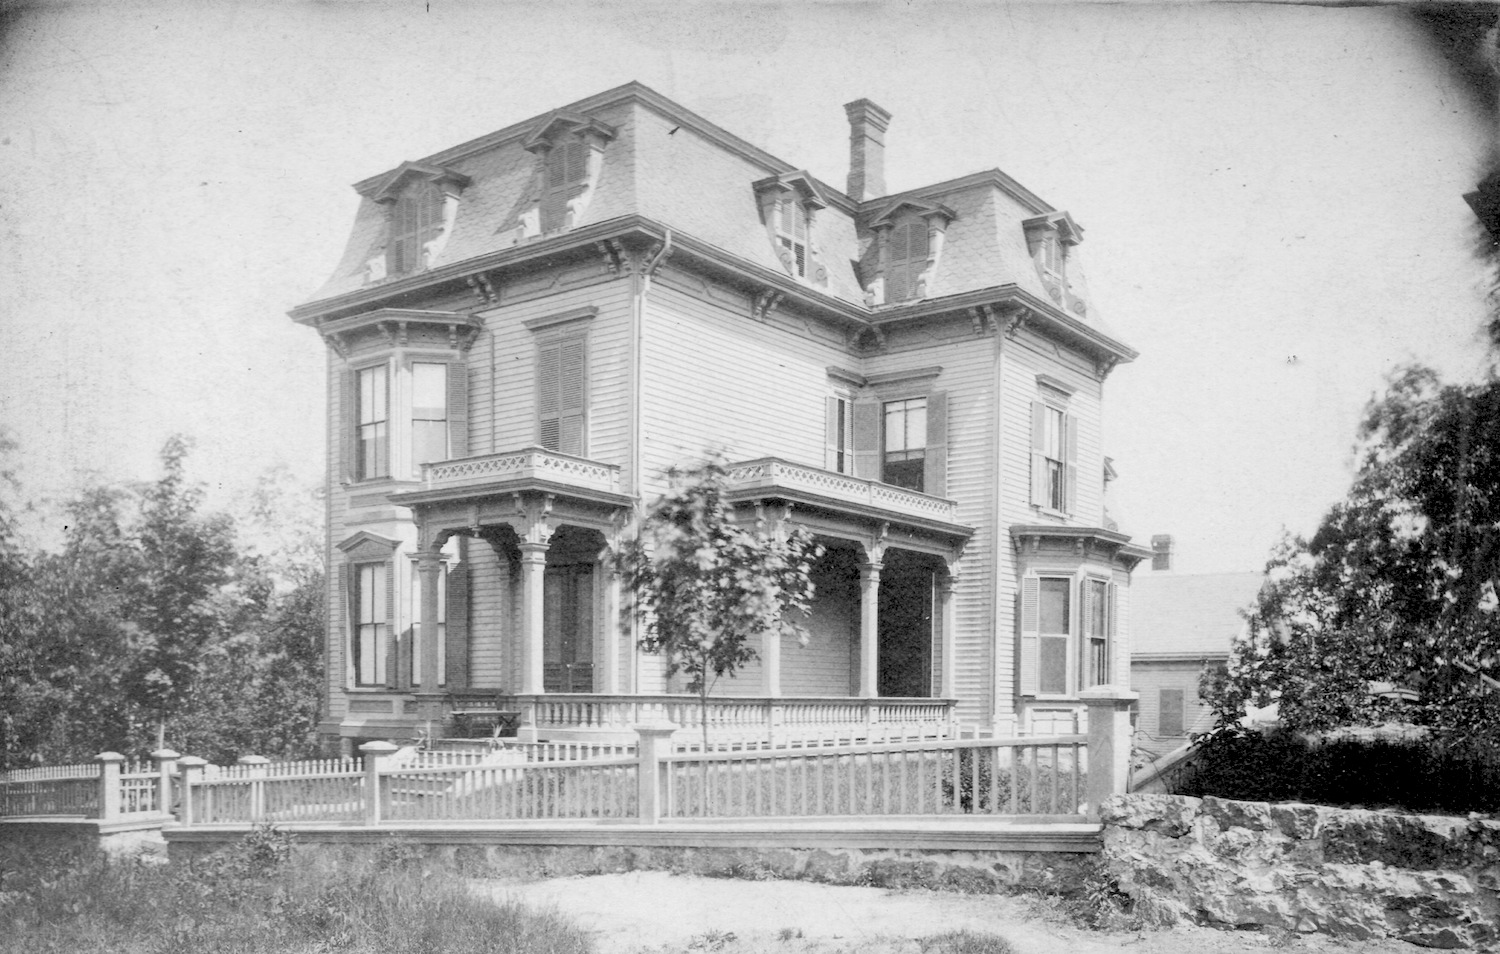 Home at the corner of Enfield and Hazel Streets (Hazel was later renamed to Robinwood Ave.) Photograph provided courtesy of Katie Knostman whose great-great-grandparents (Epaminondas Wilson and Sarah Crowell Wilson) owned and lived in the home from at least 1880-1915. Possibly 1880s to 1890s.